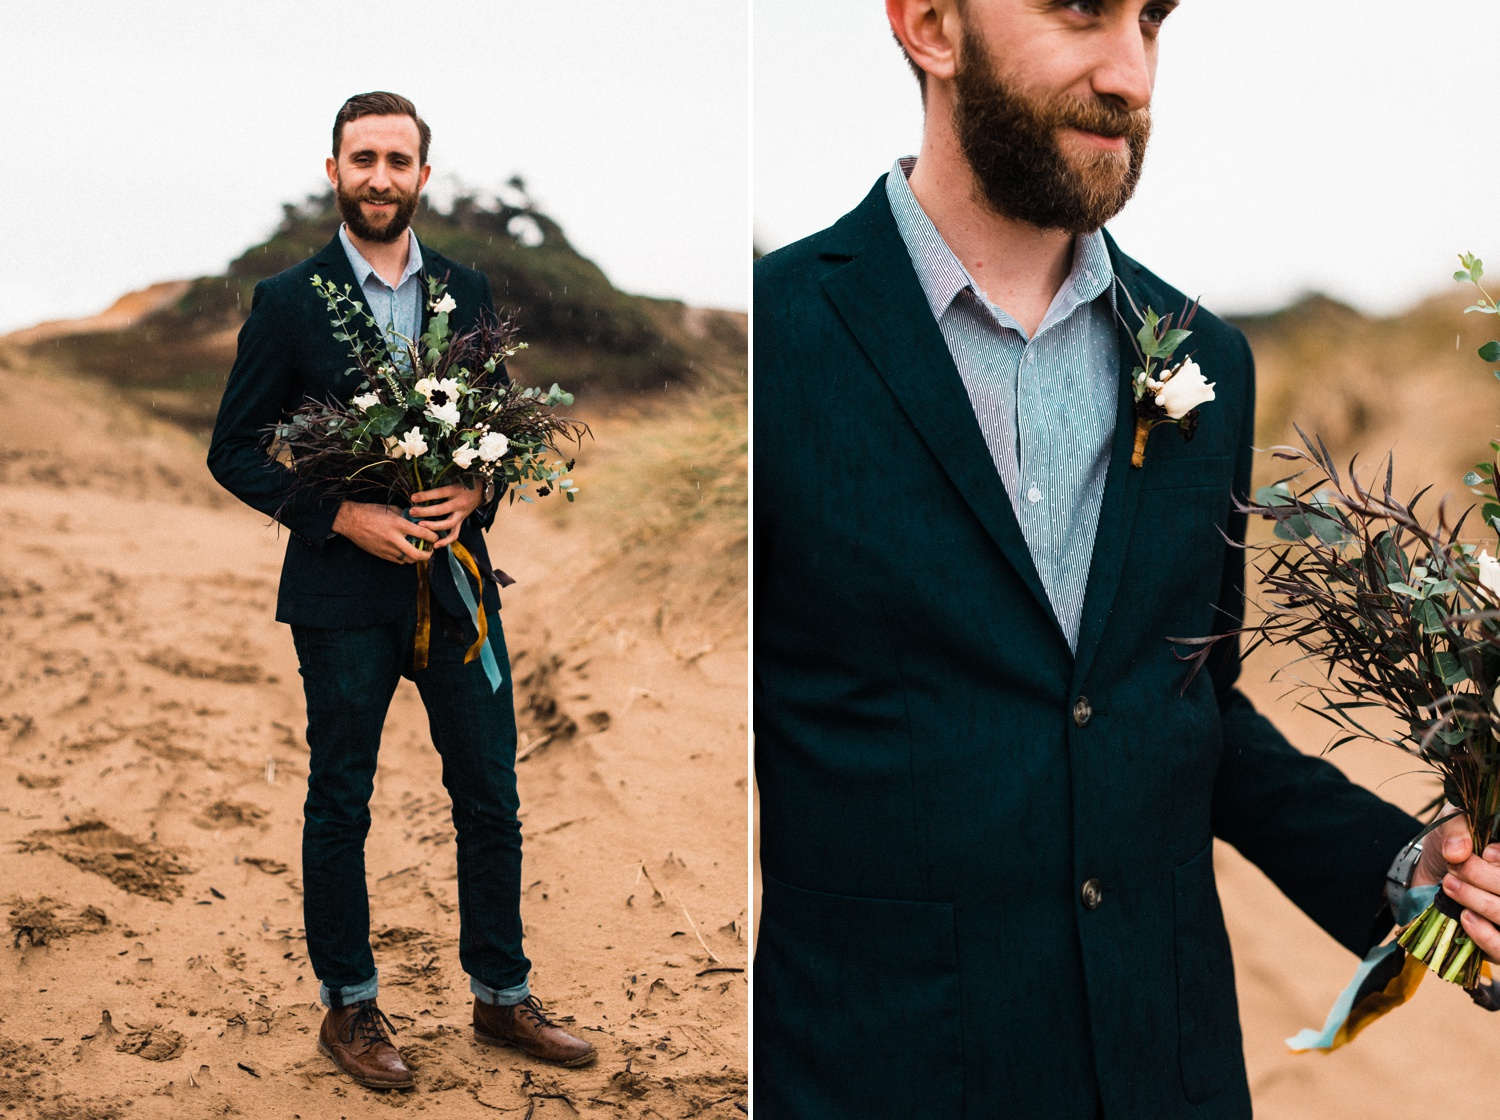 Oregon_Coast_Elopement_Wedding_The_Foxes_Photography_102.jpg